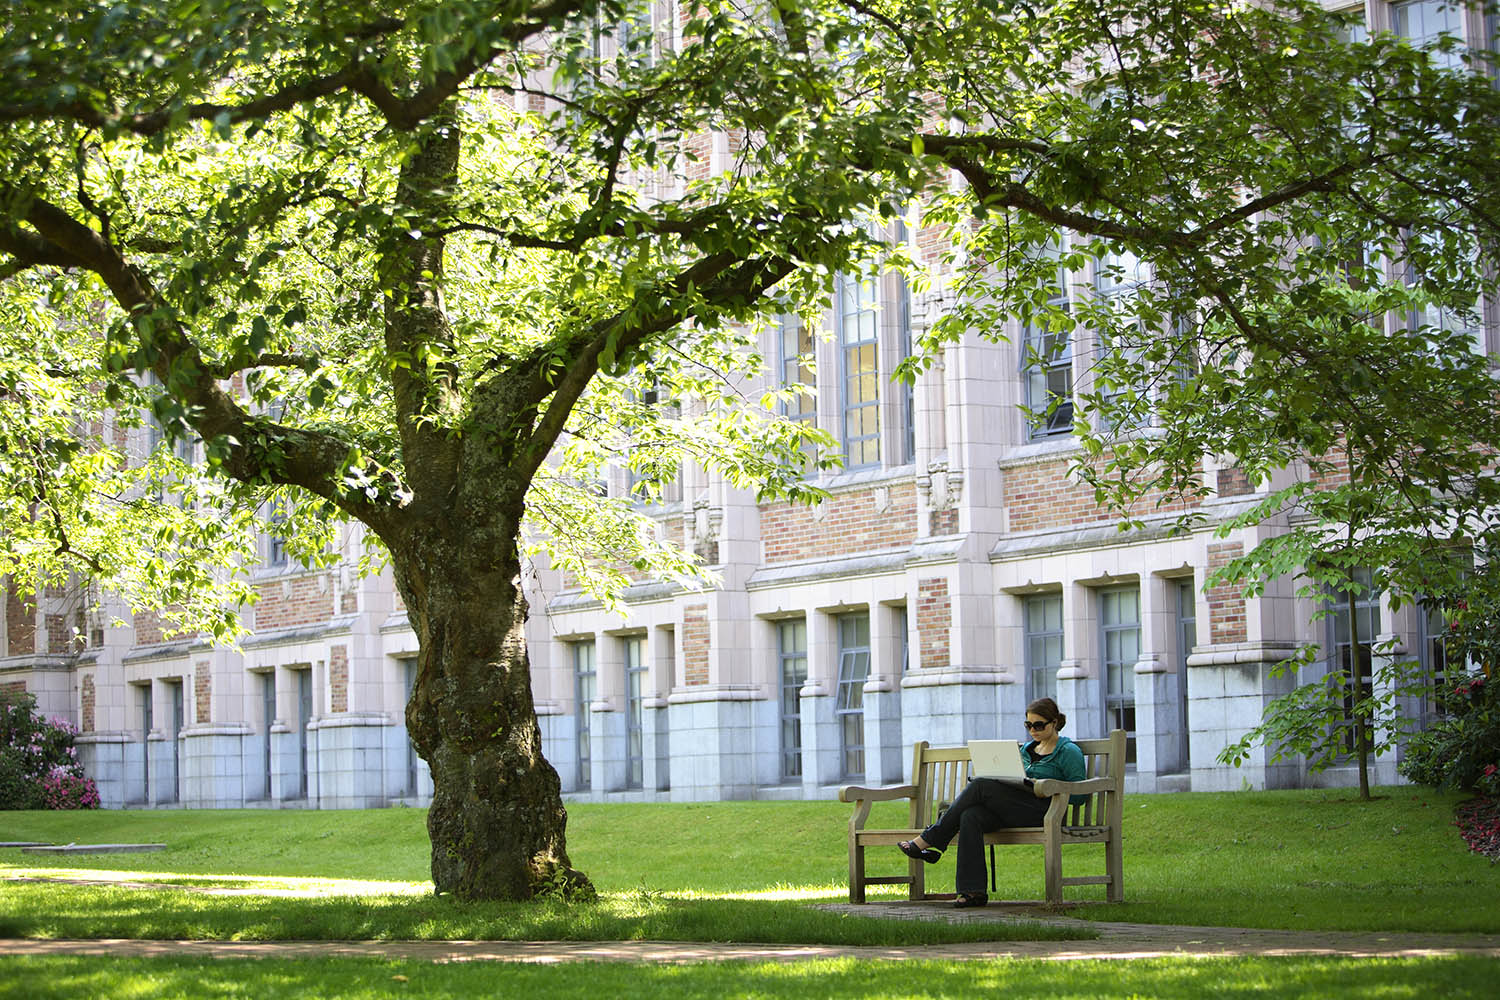 A student sits on a bench underneath a green tree on a sunny day